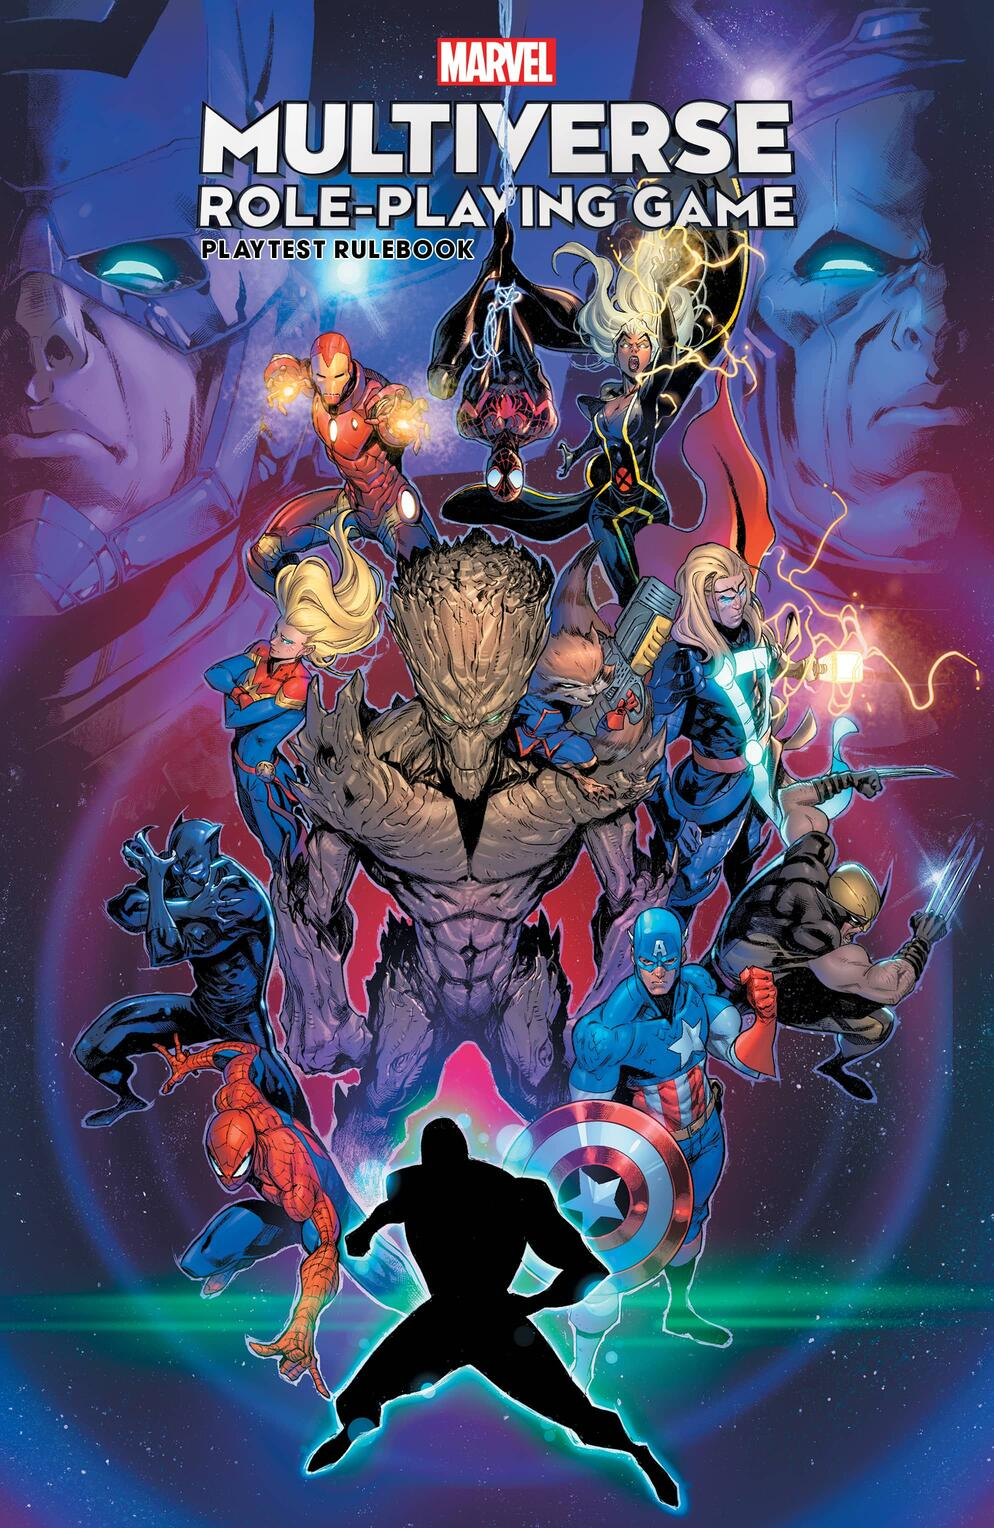 MARVEL MULTIVERSE ROLE-PLAYING GAME